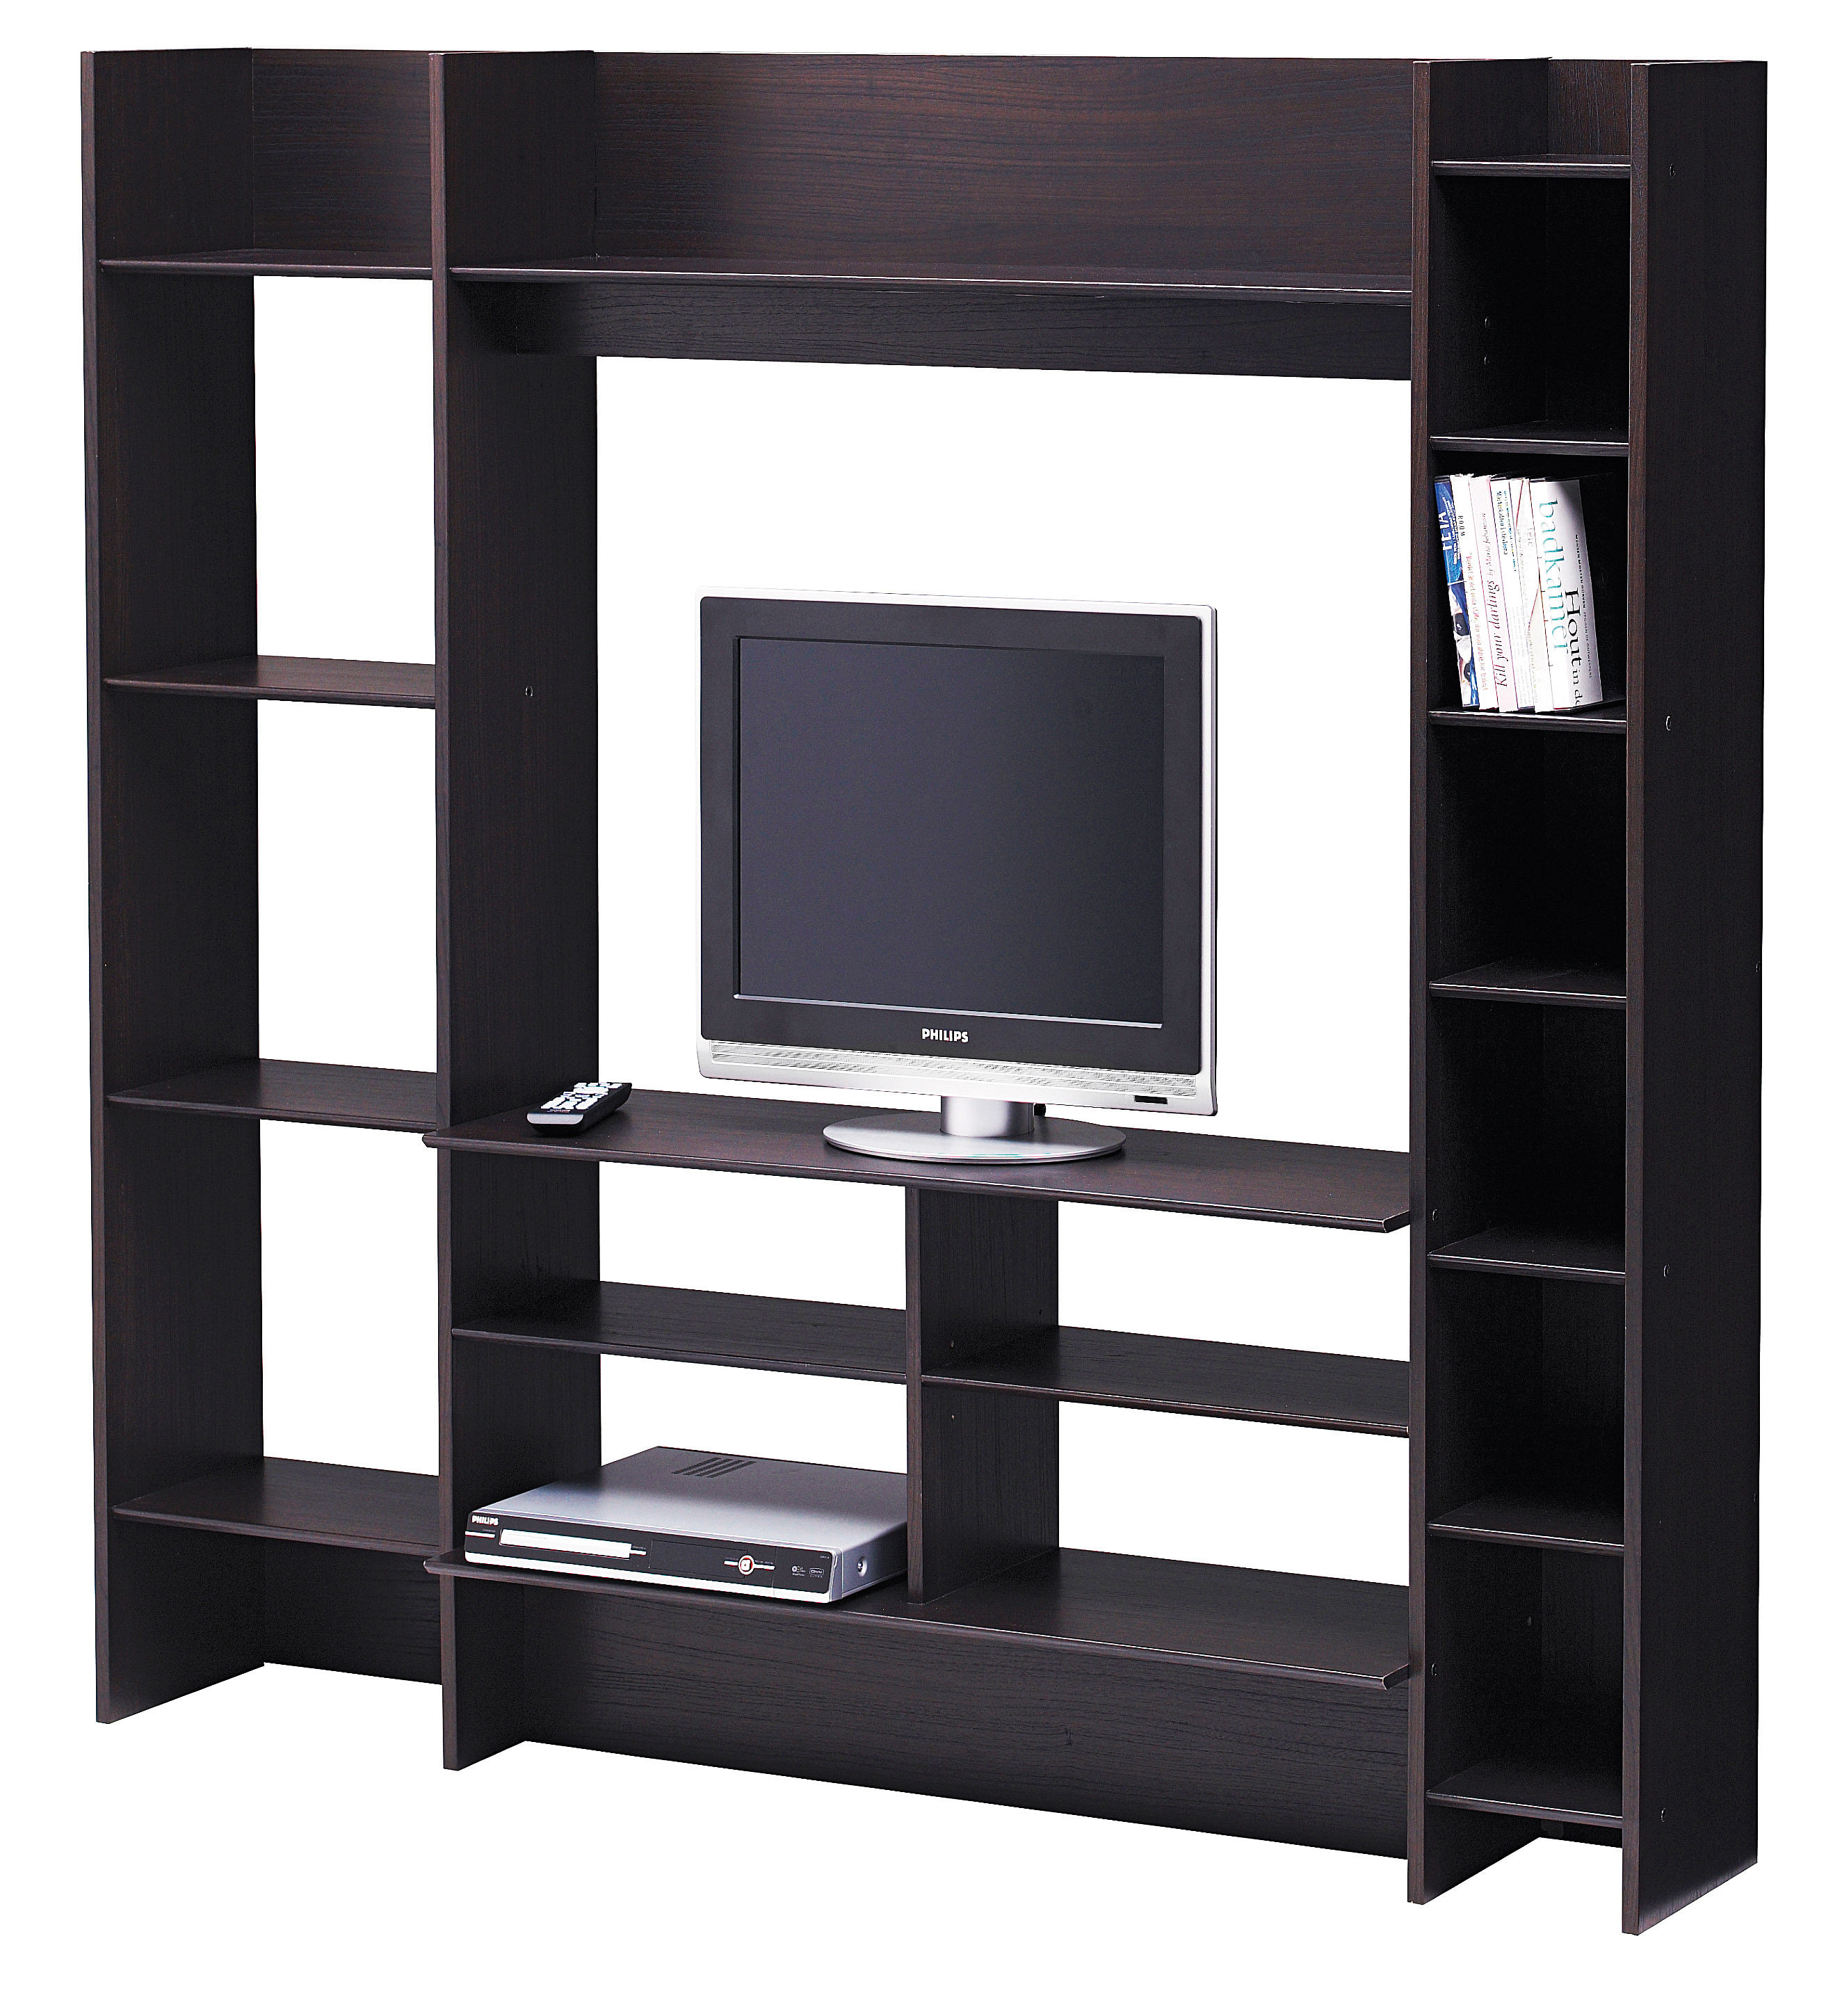 mavas entertainment centre from ikea home decor singapore. Black Bedroom Furniture Sets. Home Design Ideas